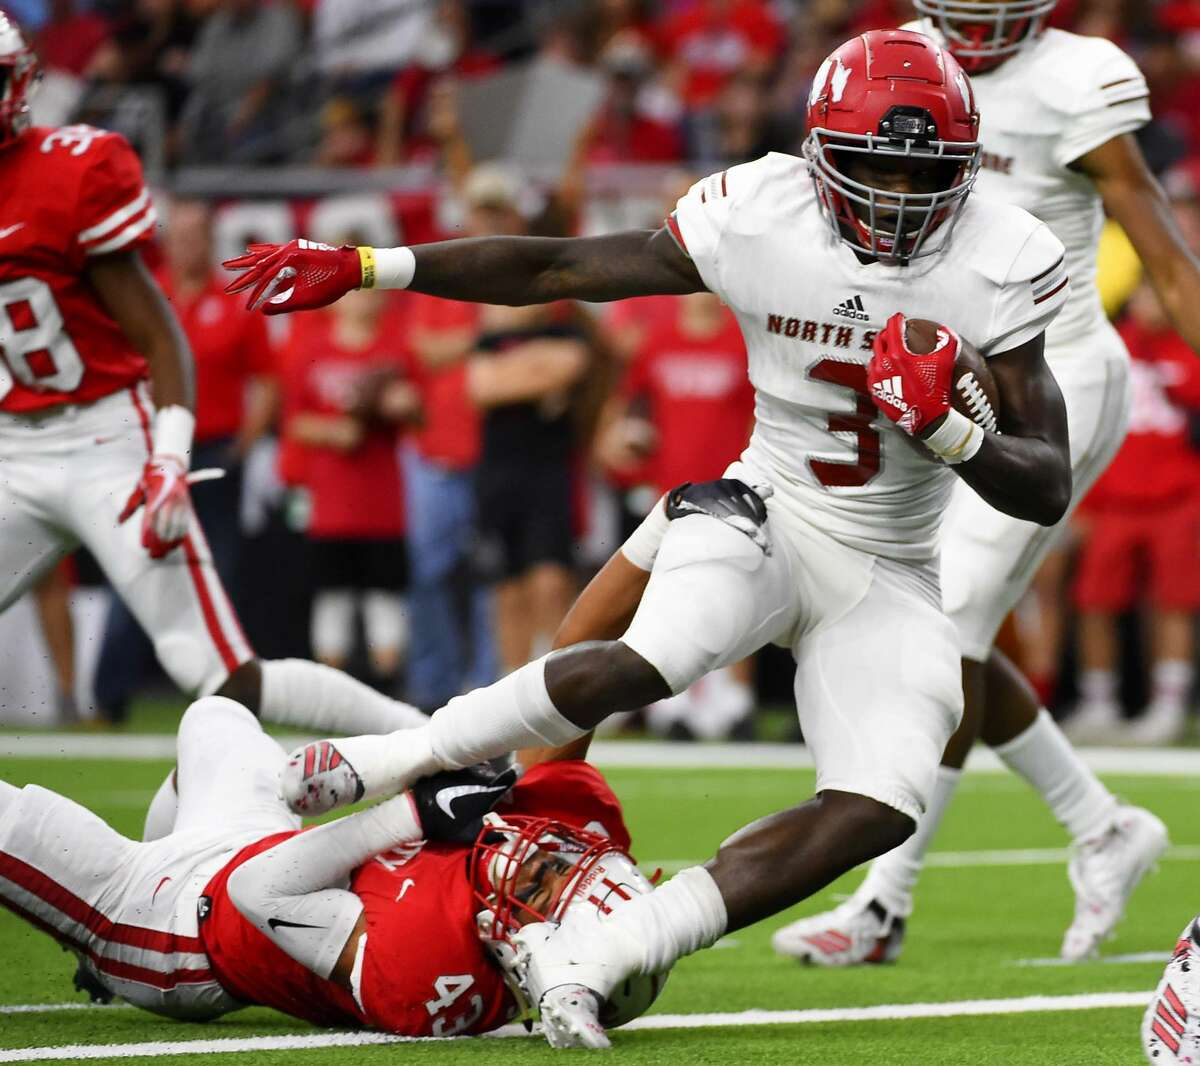 PHOTOS: High school football playoffs - regional semifinals North Shore running back Zach Evans (3) breaks the tackle of Katy defensive back Dalton Johnson and scores a touchdown during the first half of a 6A Division 1 regional high school football playoff game, Friday, Nov. 29, 2019, in Houston. >>>See more photos from last week's playoff matchups ...